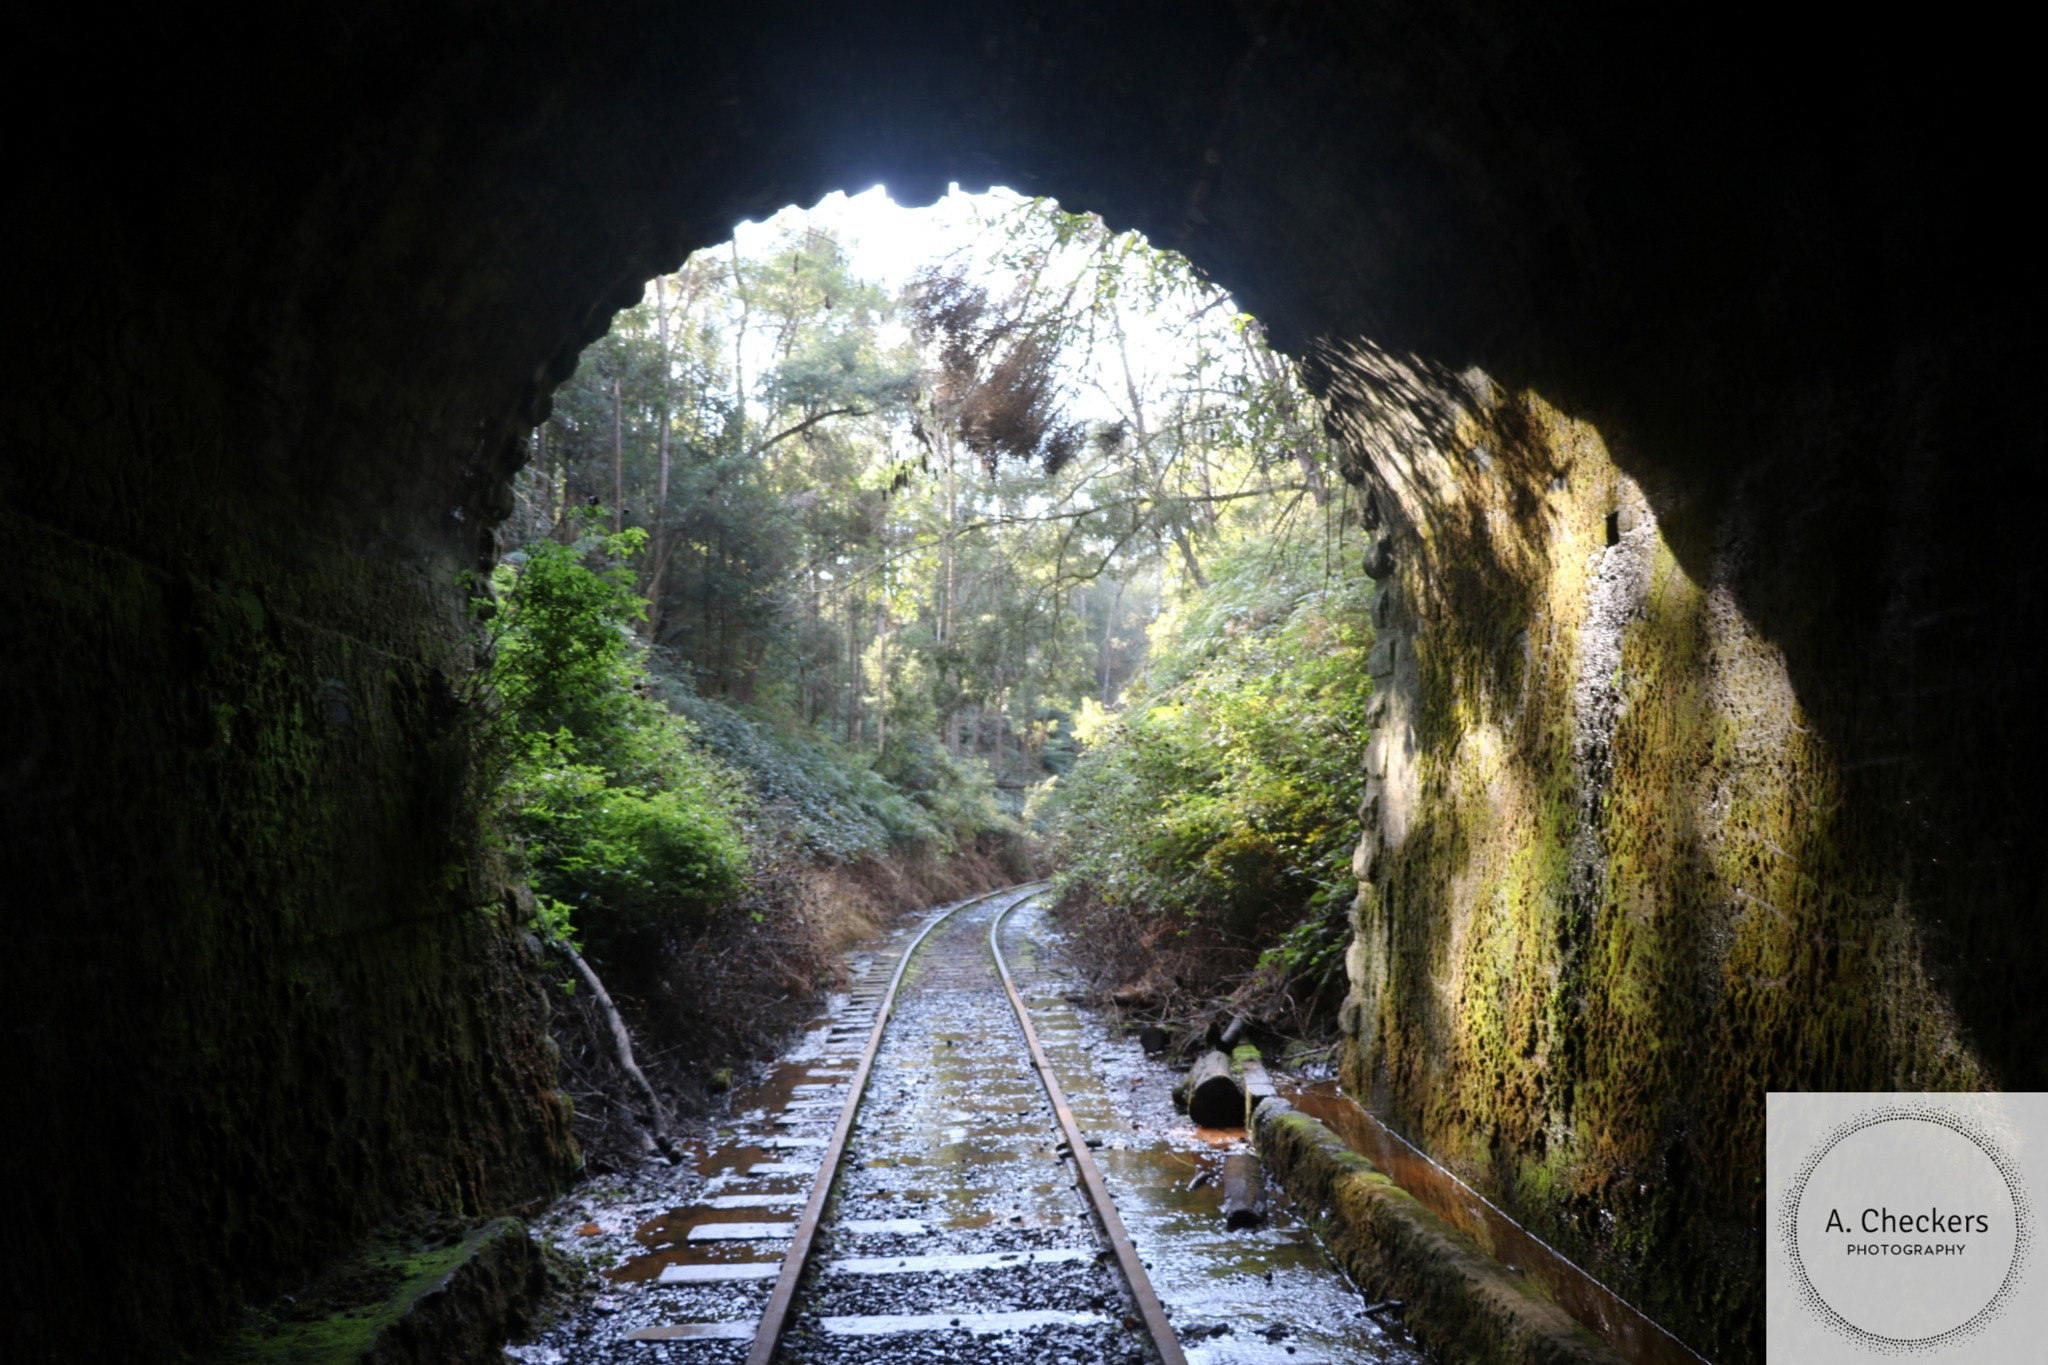 Light at the end of the tunnel. by A. Checkers Photography